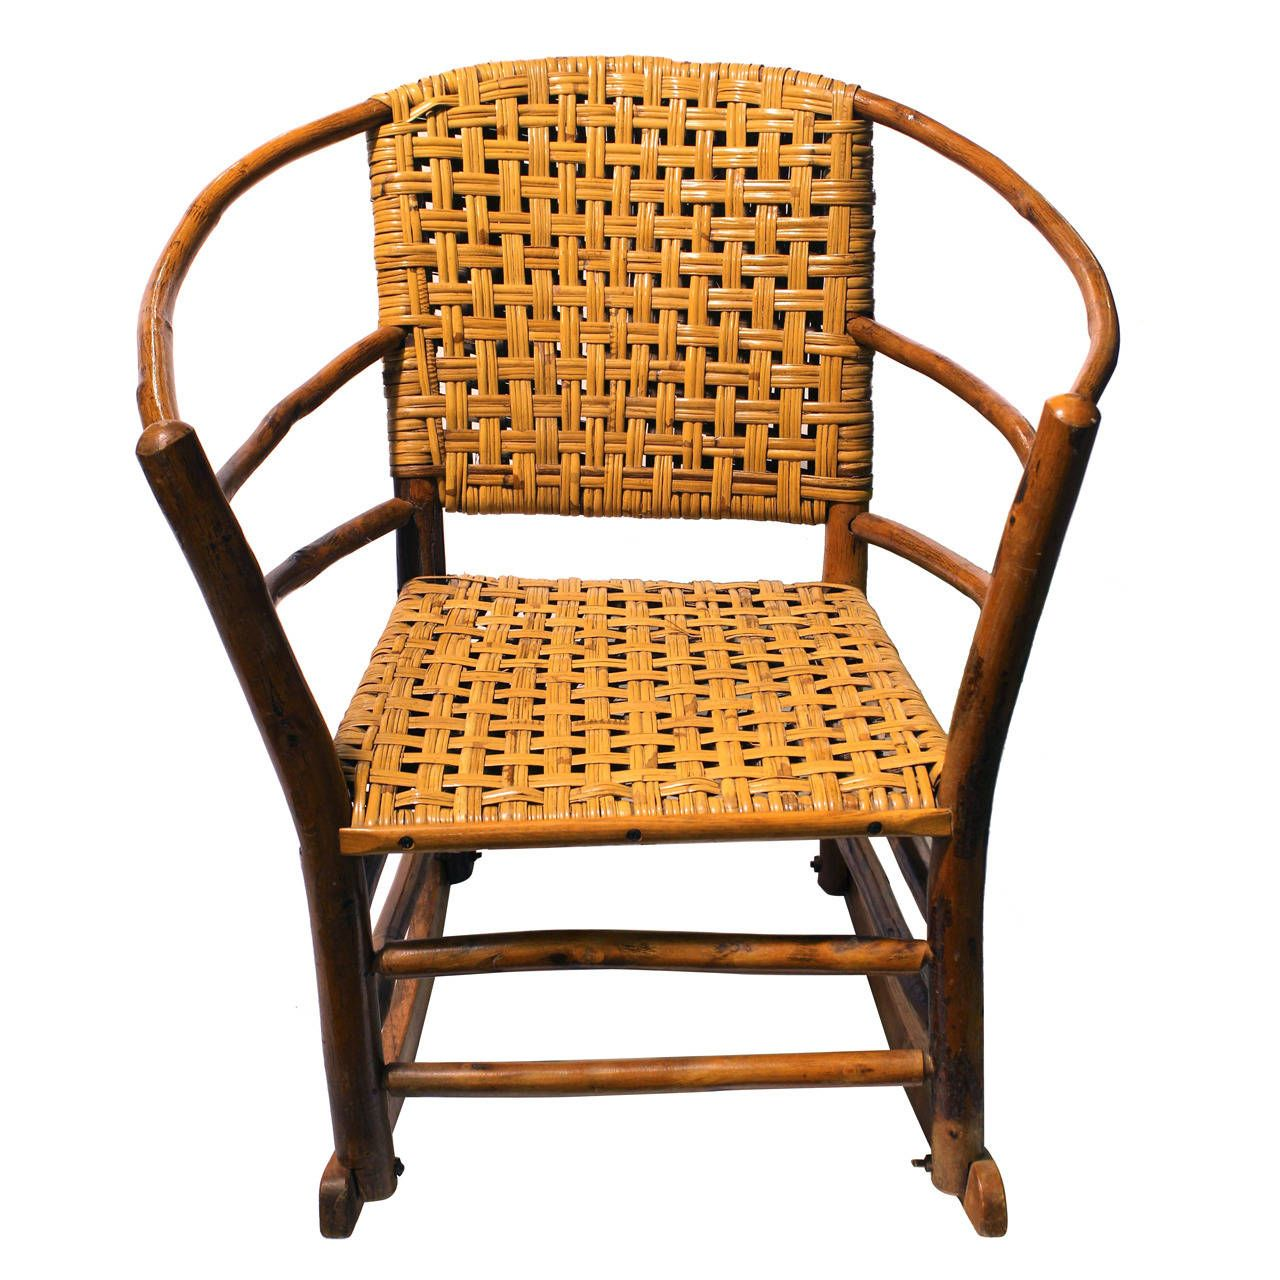 1940s American Old Hickory Co. Rocking Chair From a